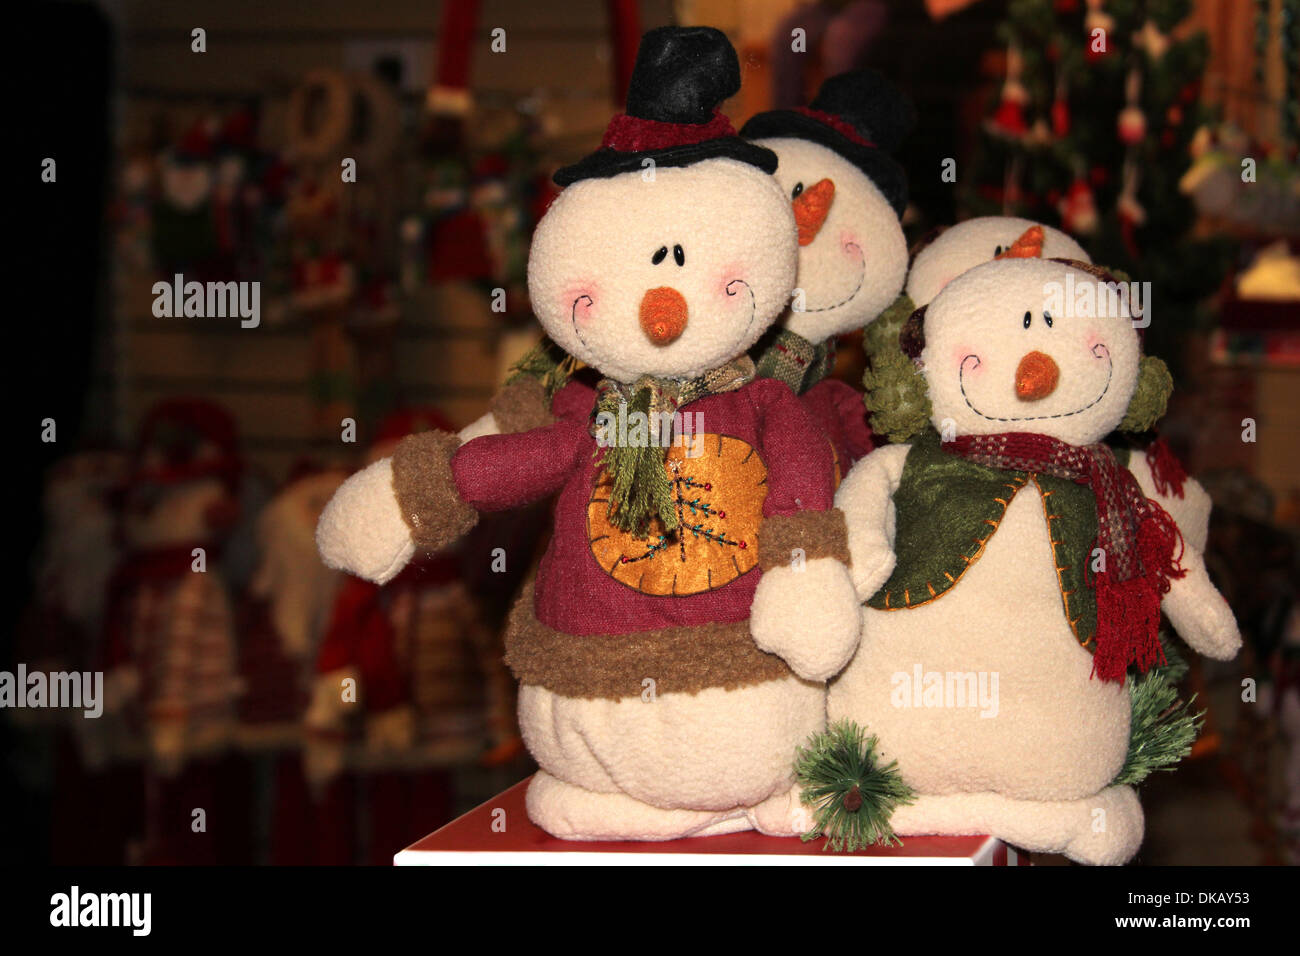 Snowmen Christmas Decorations - Stock Image